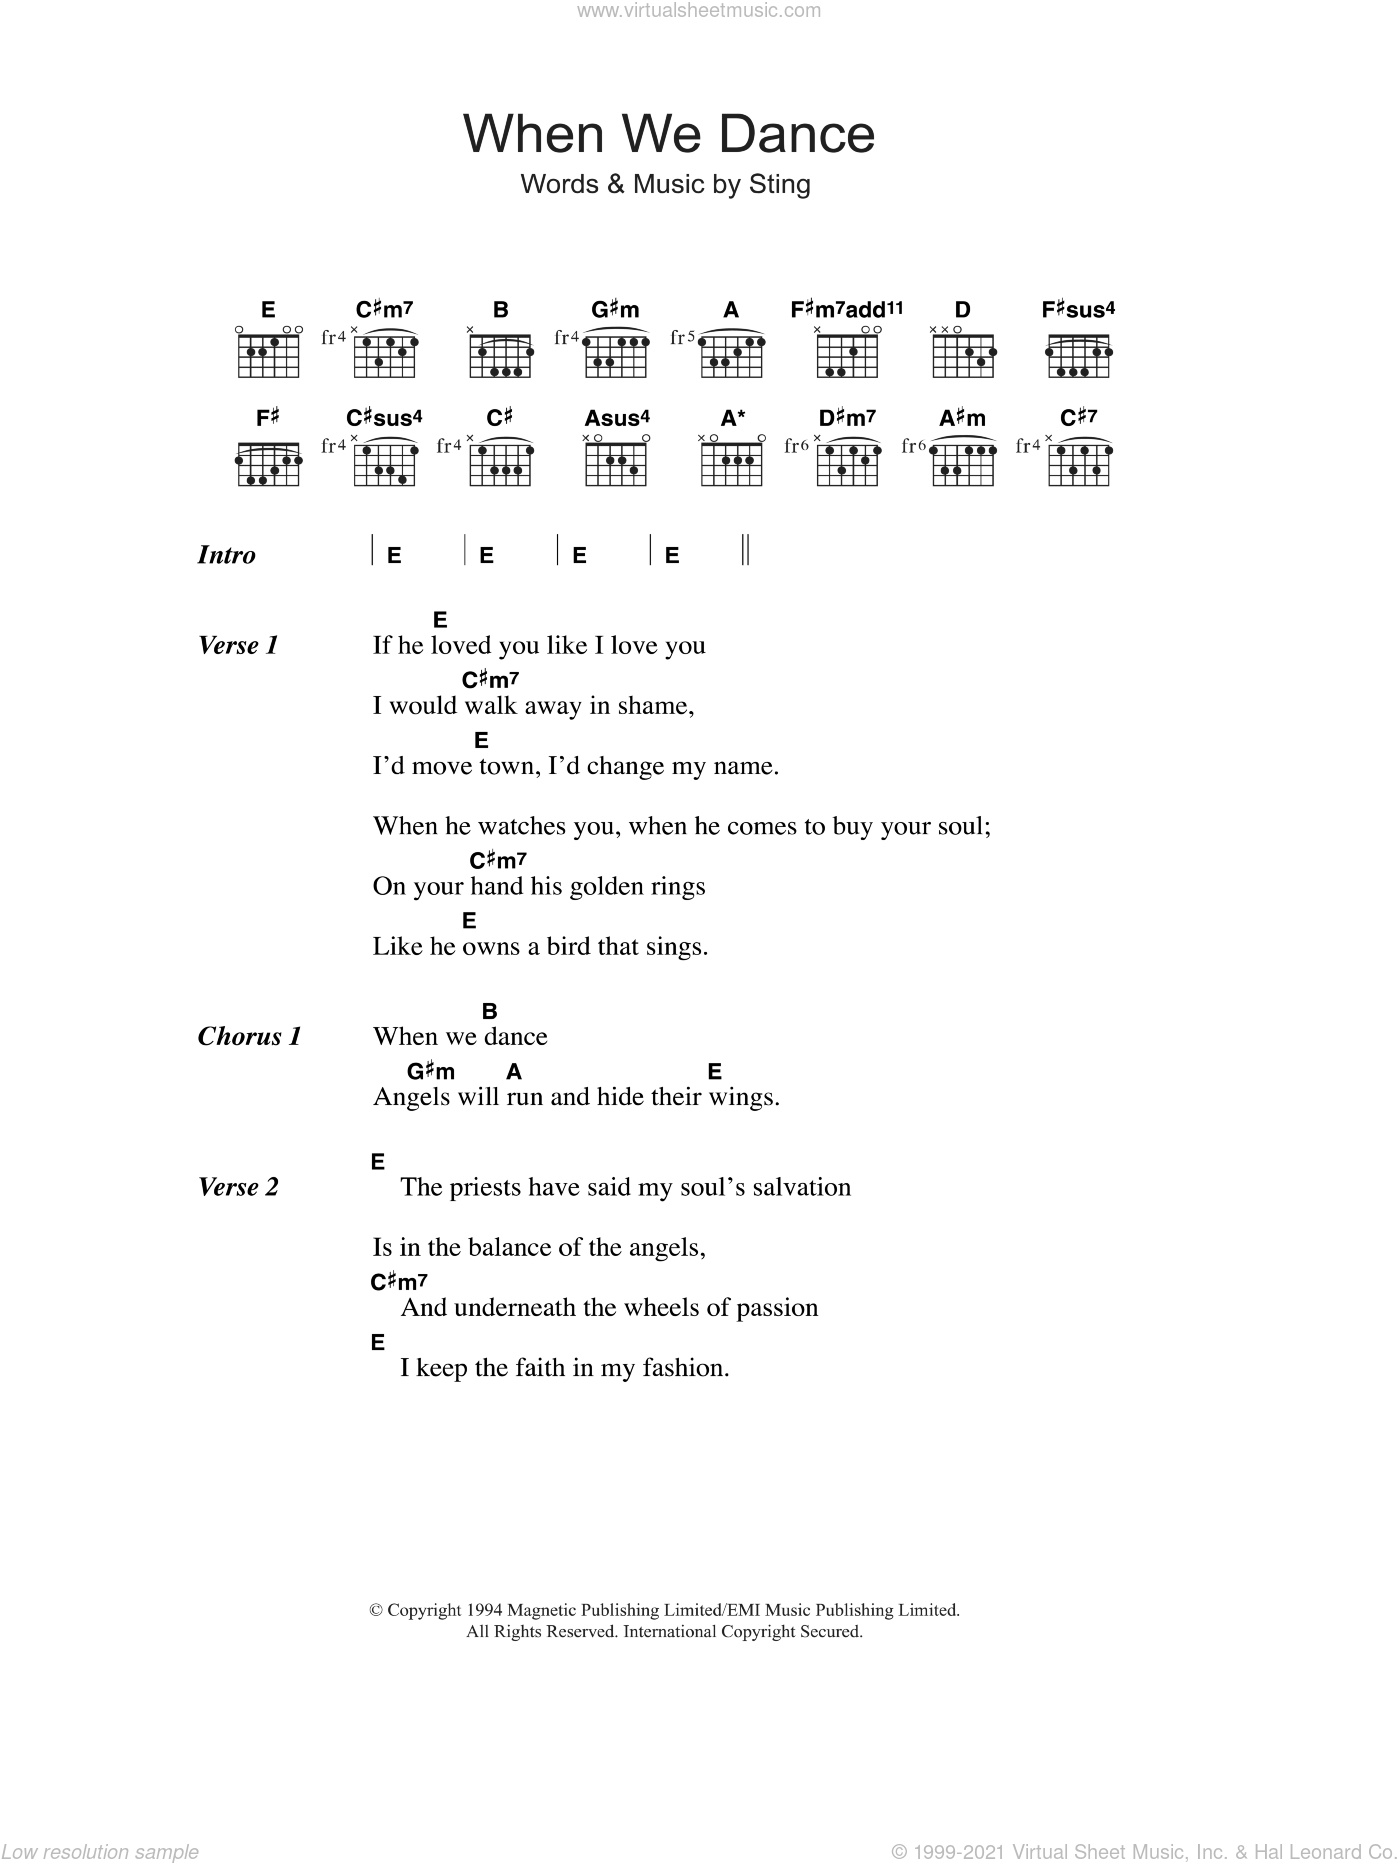 When We Dance sheet music for guitar (chords) by Sting, intermediate skill level